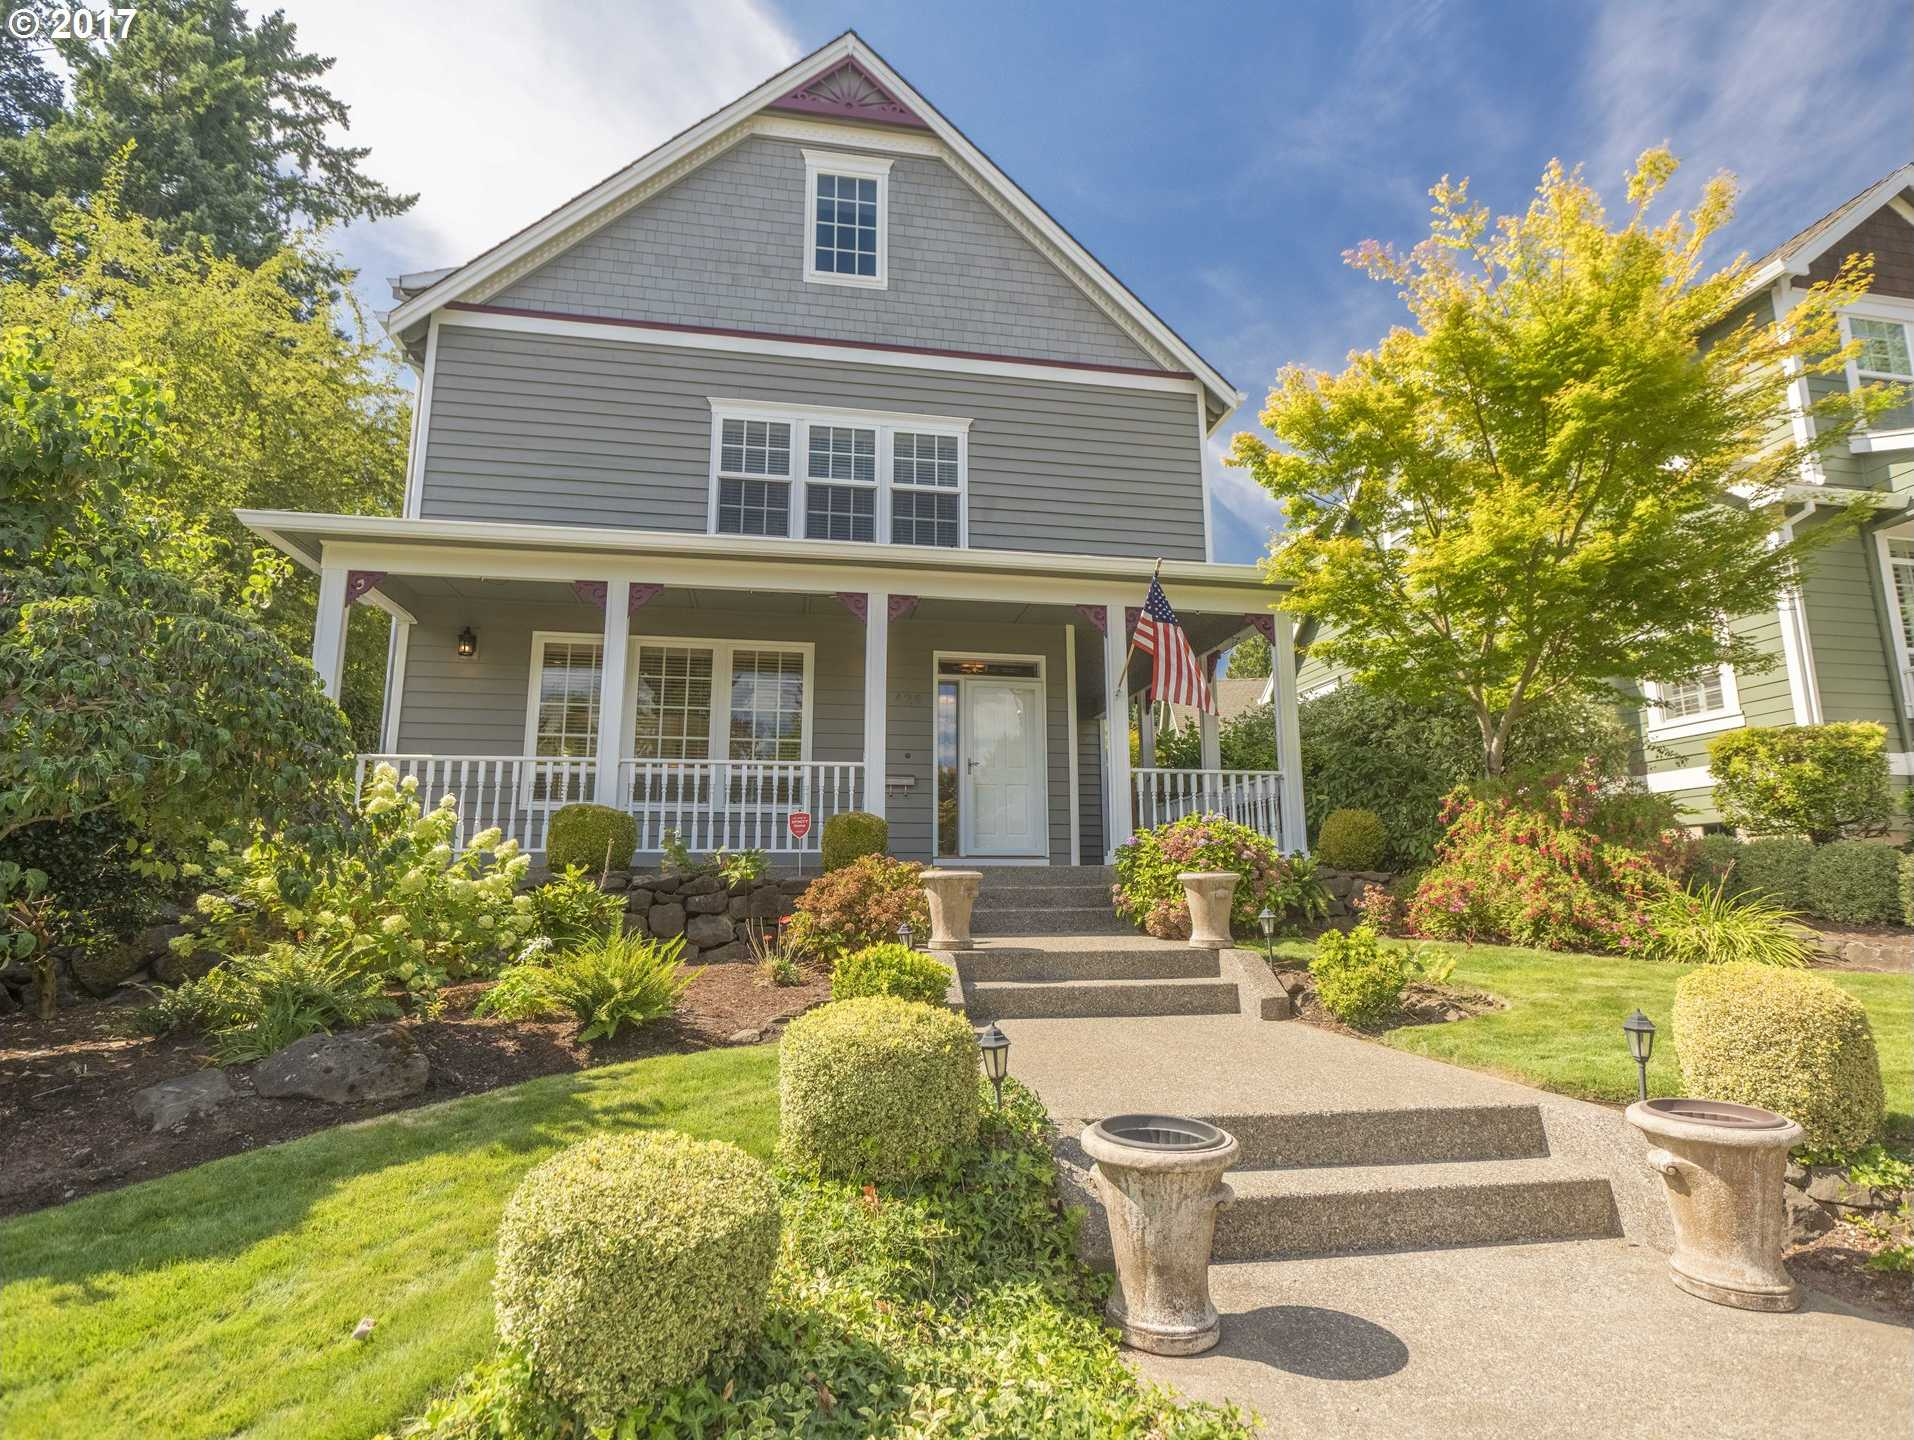 $1,000,000 - 4Br/3Ba -  for Sale in First Addition, Lake Oswego